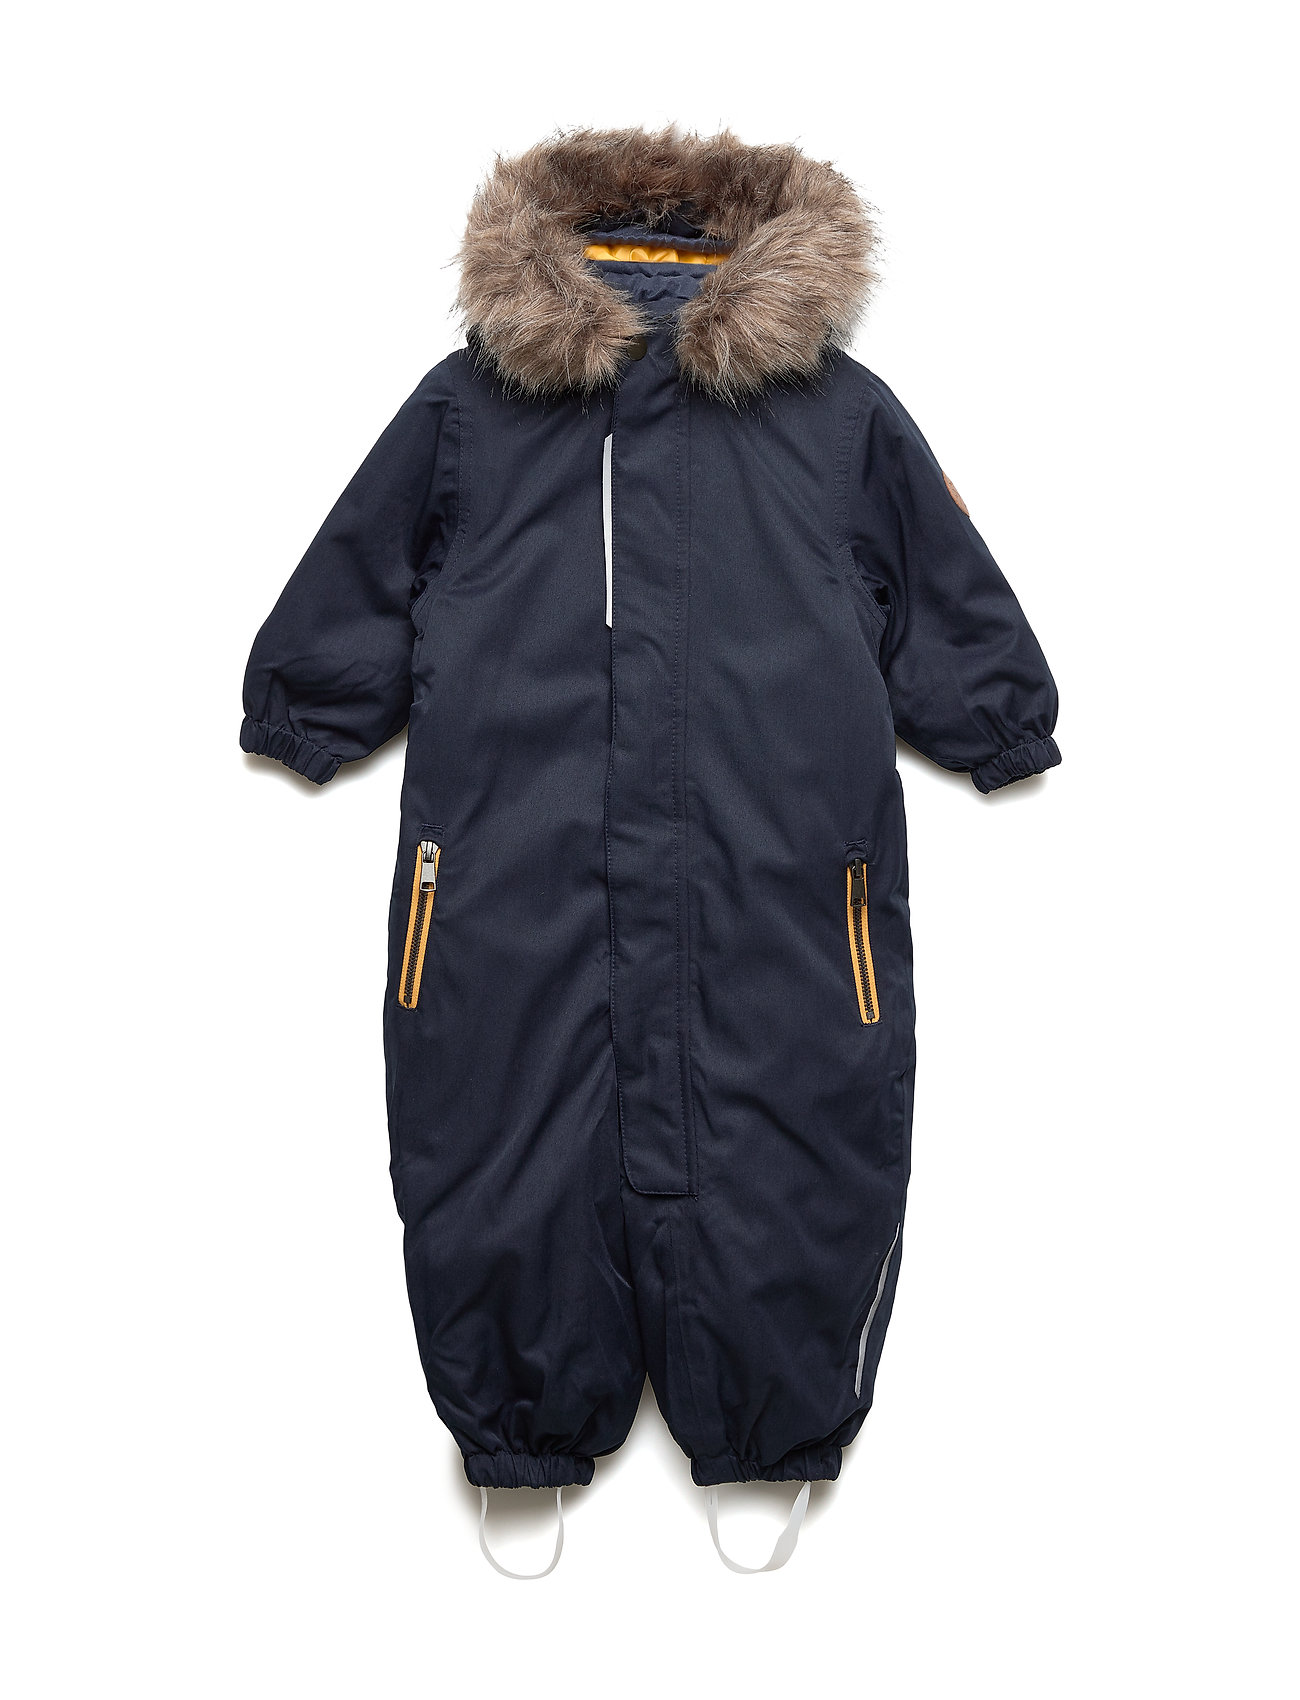 Image of Nmmsnow10 Suit 1fo Outerwear Snow/ski Clothing Snow/ski Suits & Sets Blå Name It (3232218279)